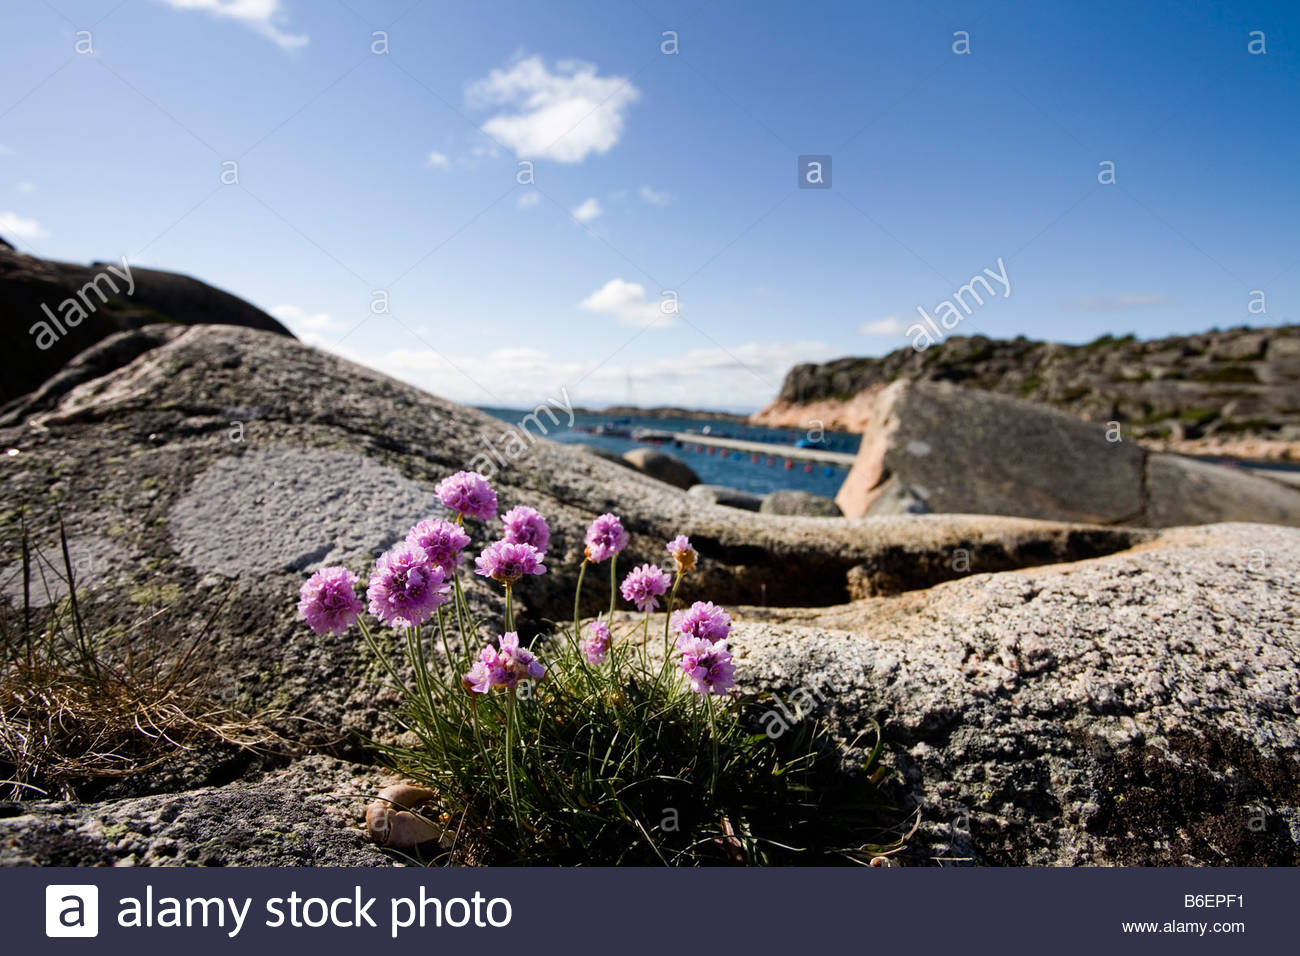 Pink flowers on rock - Stock Image